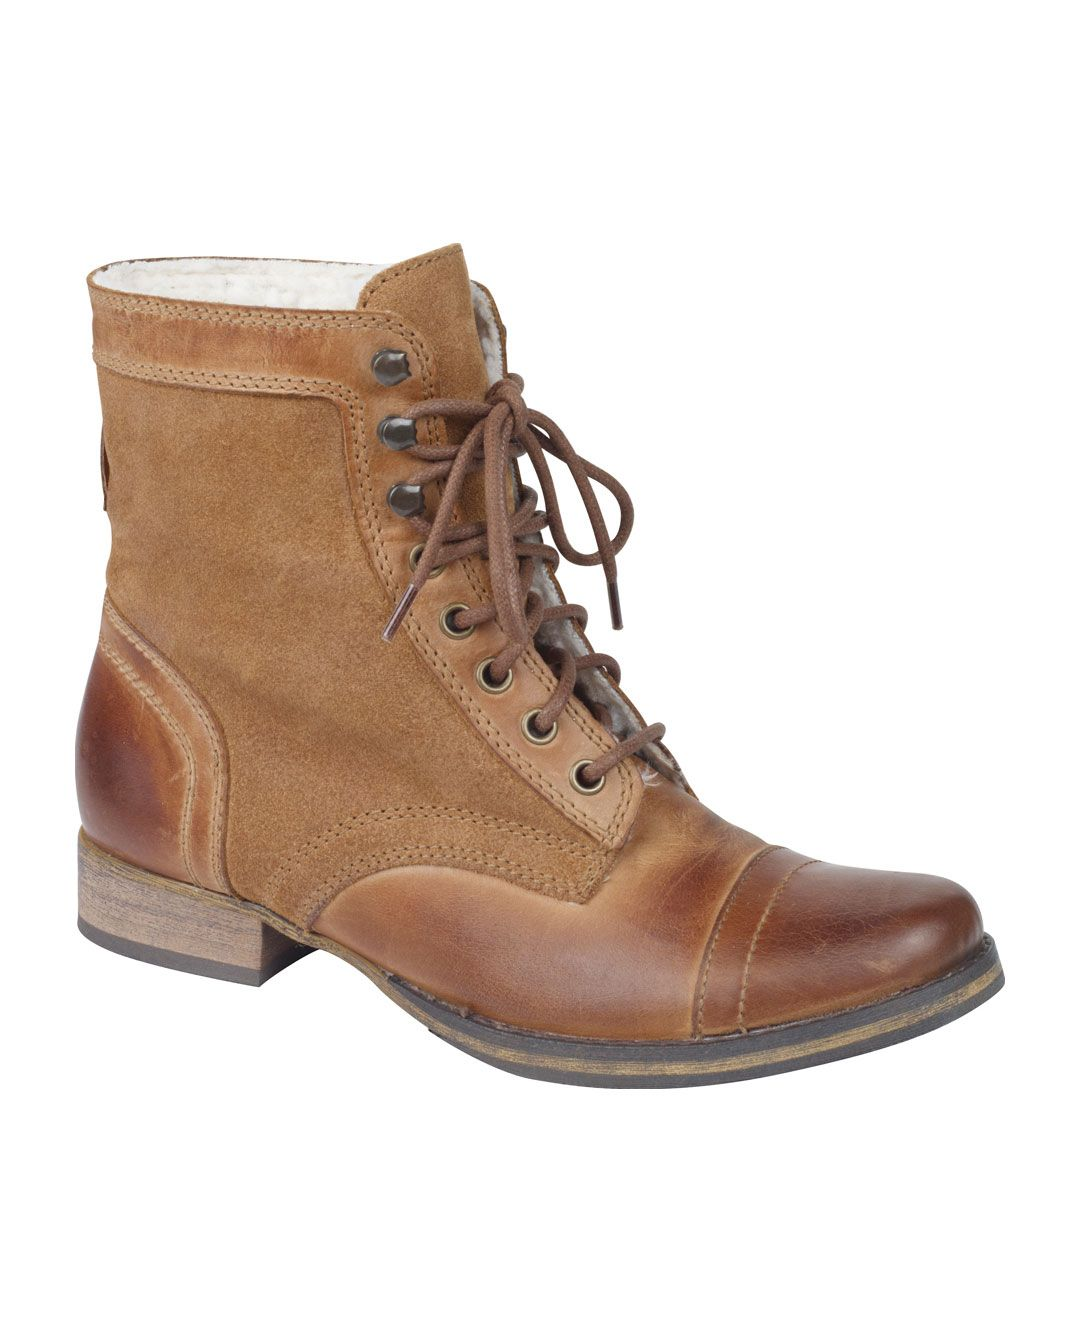 1dba8a343c8 Blair Lace Up Boot | fashion | Shoe boots, Boots, Lace up shoes